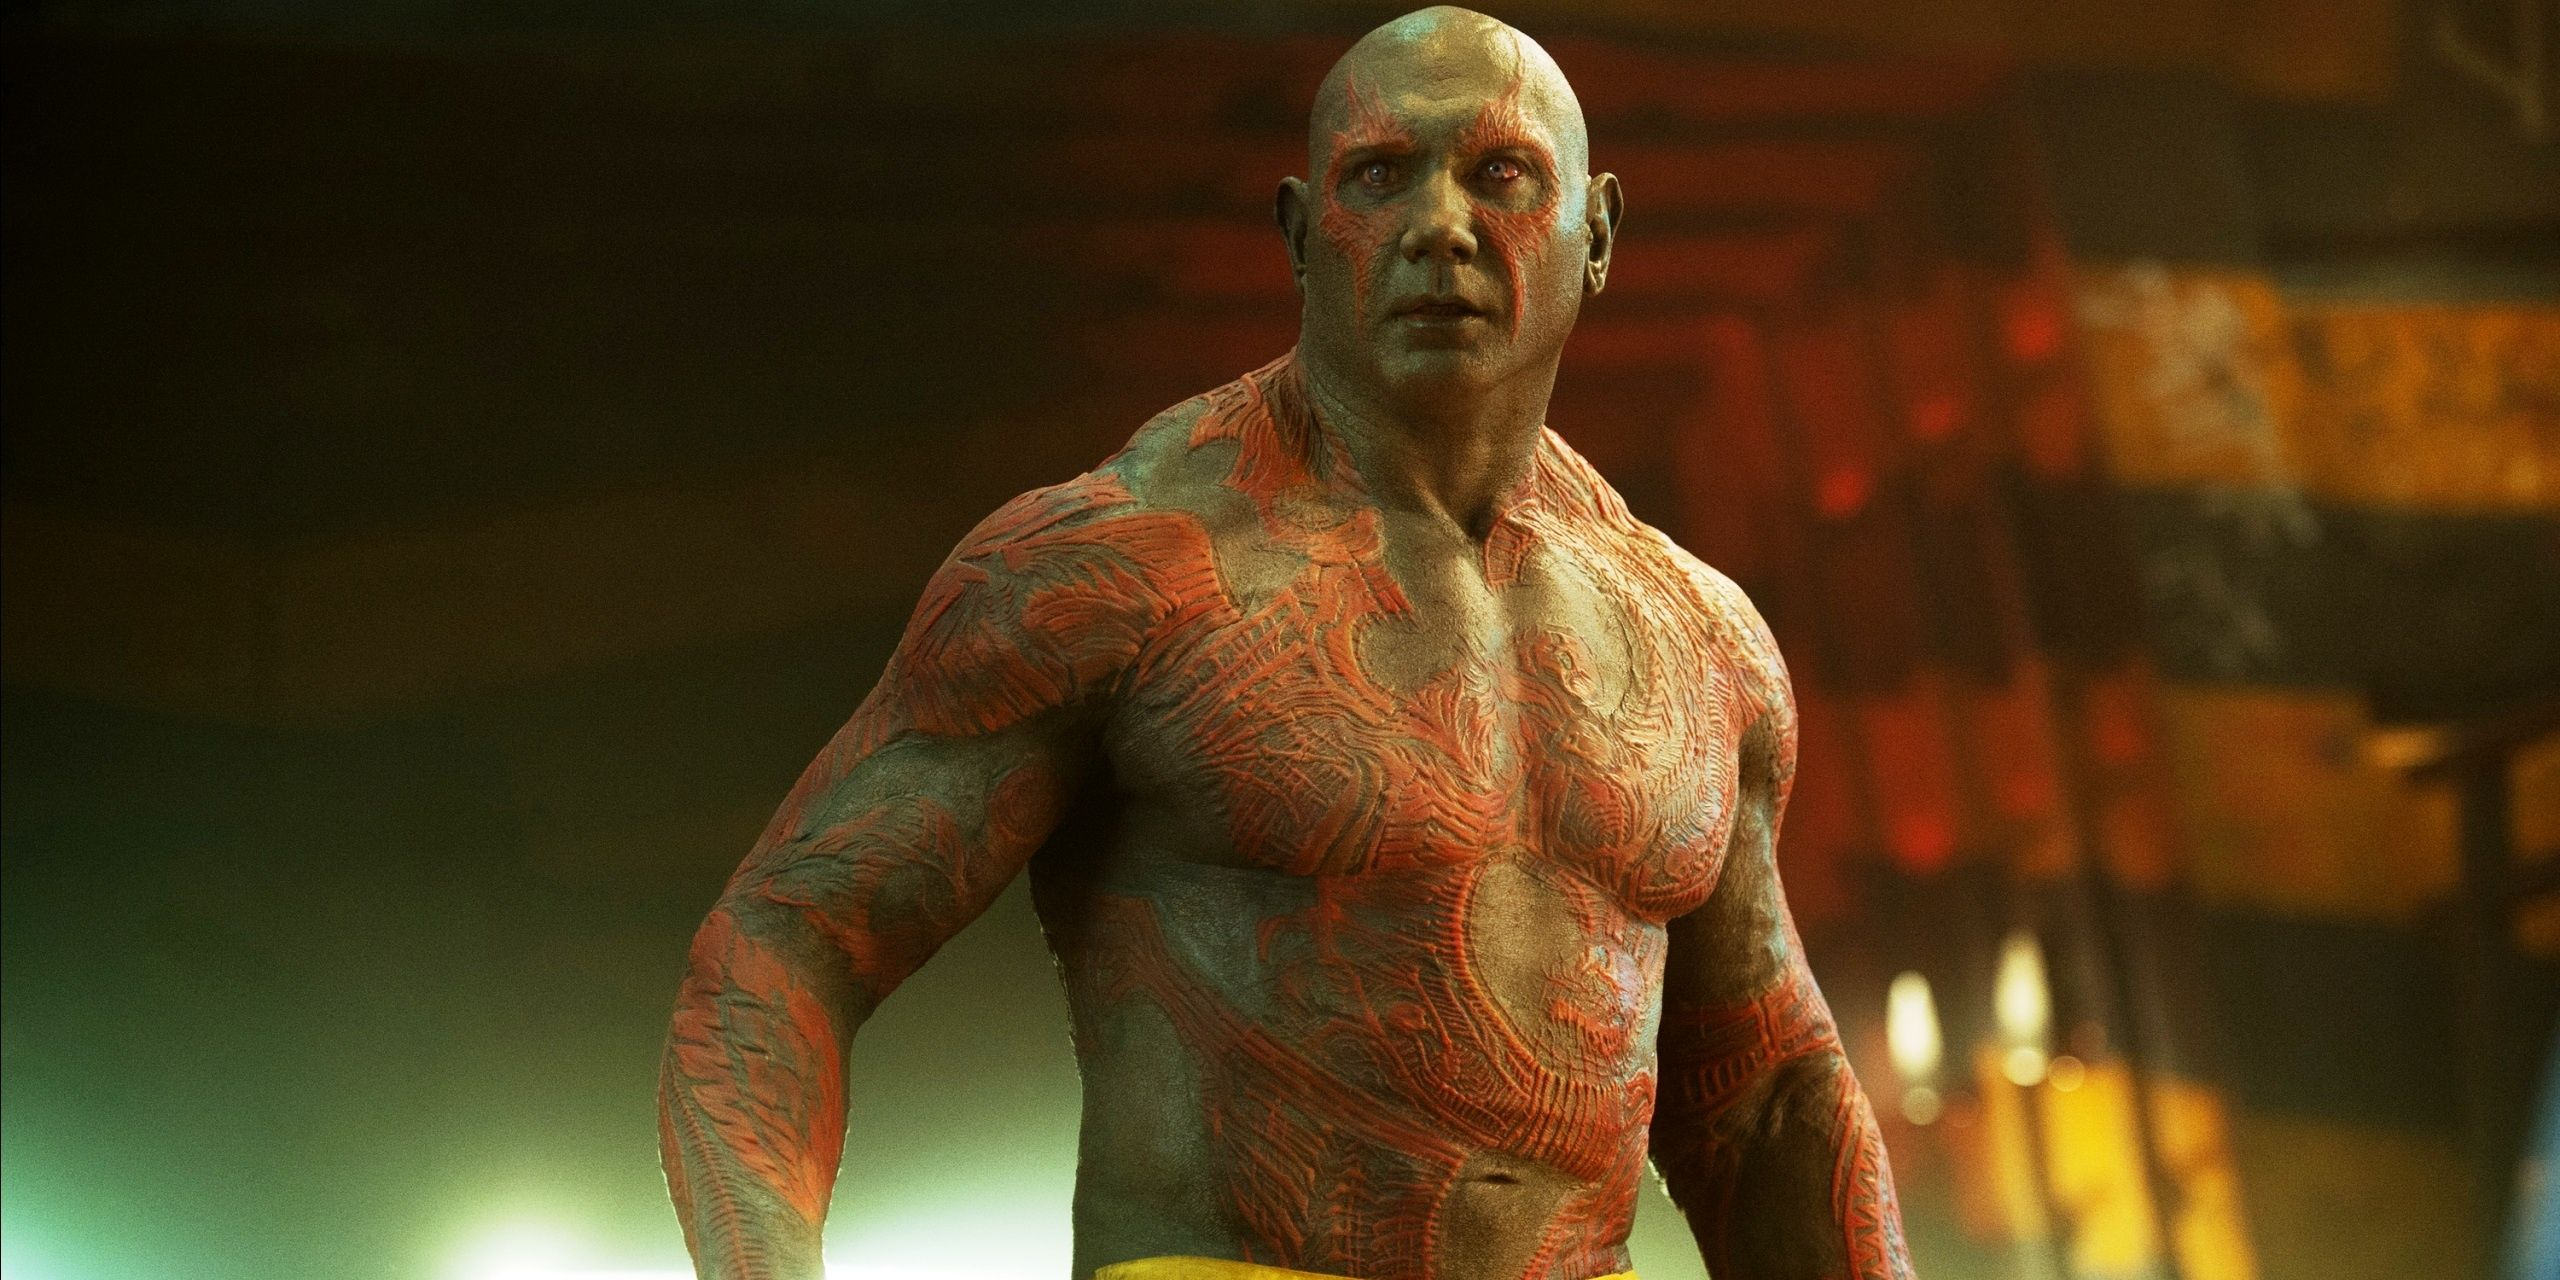 Drax in Guardians of the Galaxy